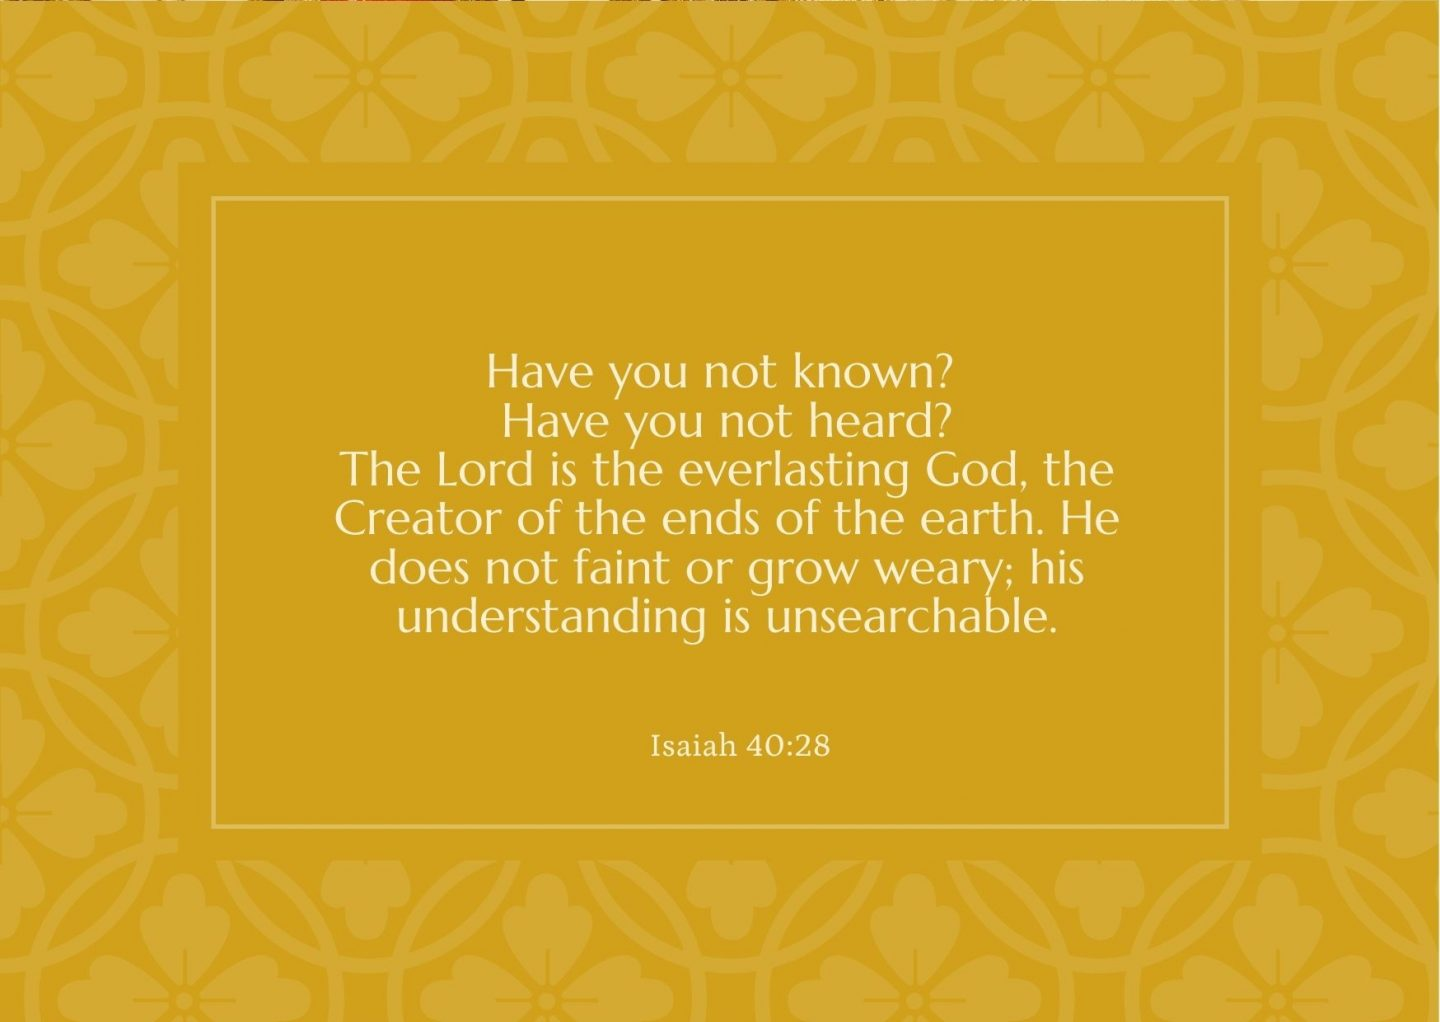 Have you not known? Have you not heard? The Lord is the everlasting God, the Creator of the ends of the earth. He does not faint or grow weary; his understanding is unsearchable. Isaiah 40:28